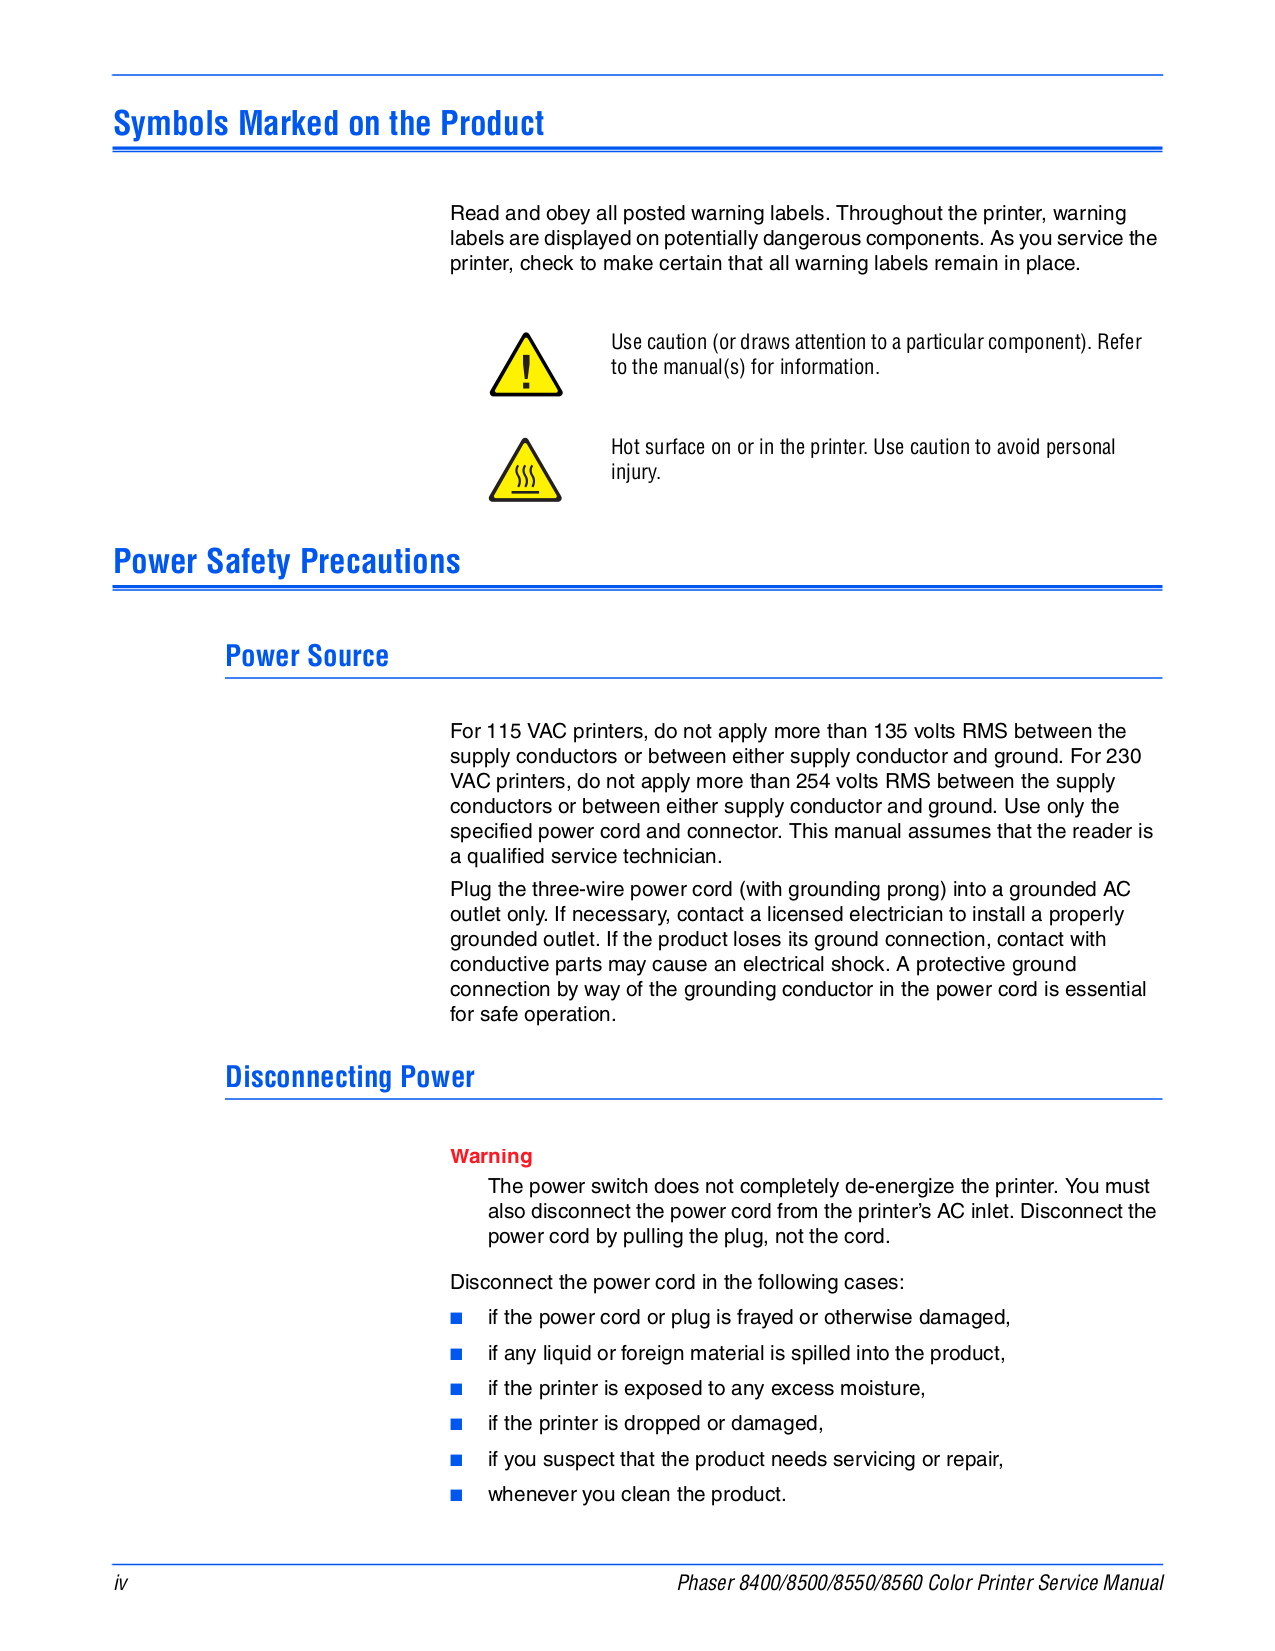 pdf manual for xerox printer phaser 450 rh umlib com xerox phaser 8400 service manual Xerox Printing Solutions